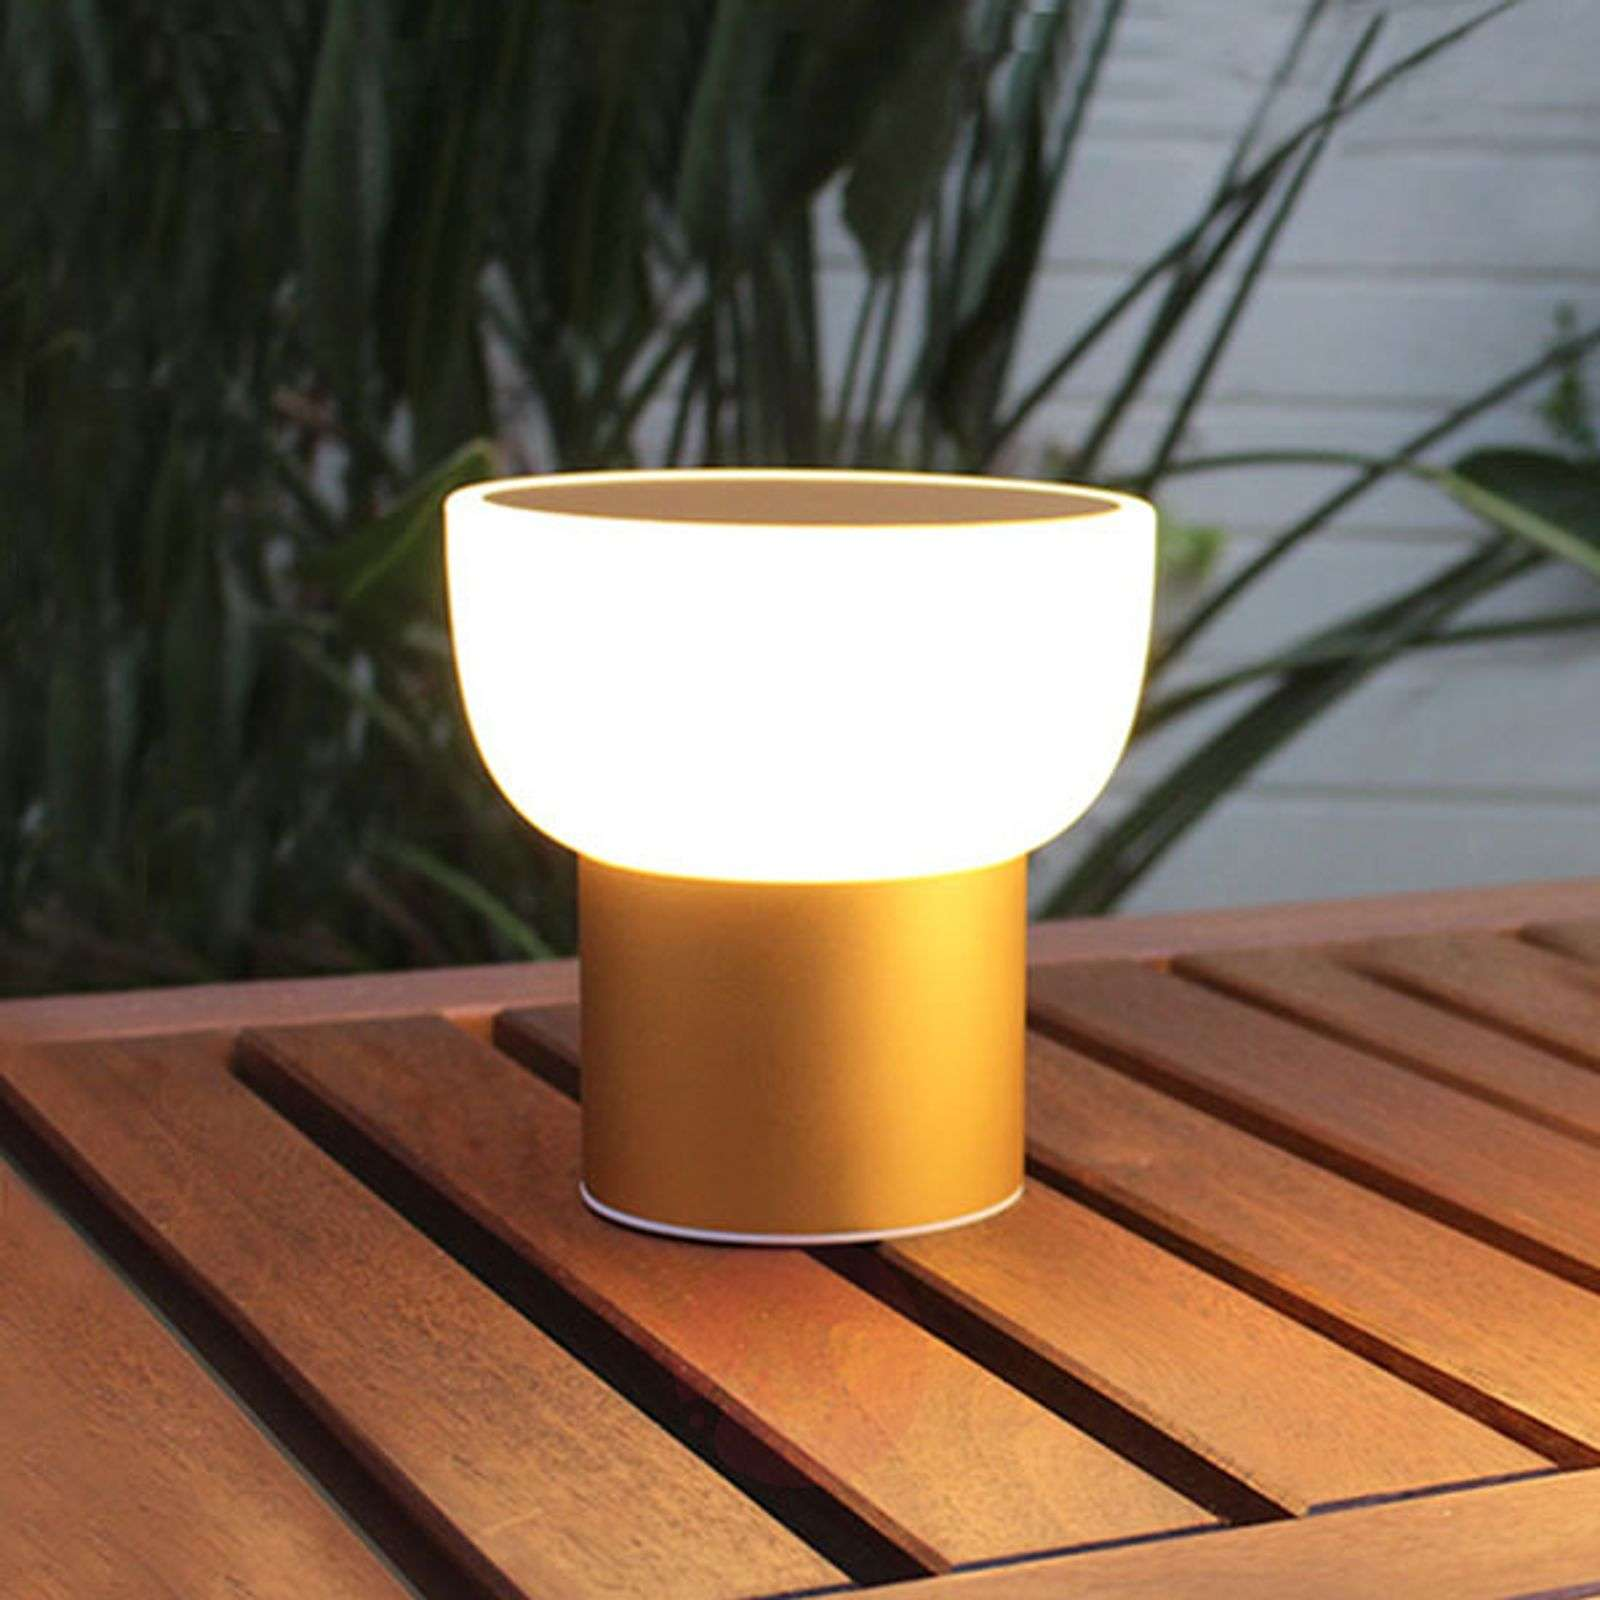 Luz decorativa LED Patio, dorado 16 cm 1 USB-1022054-01